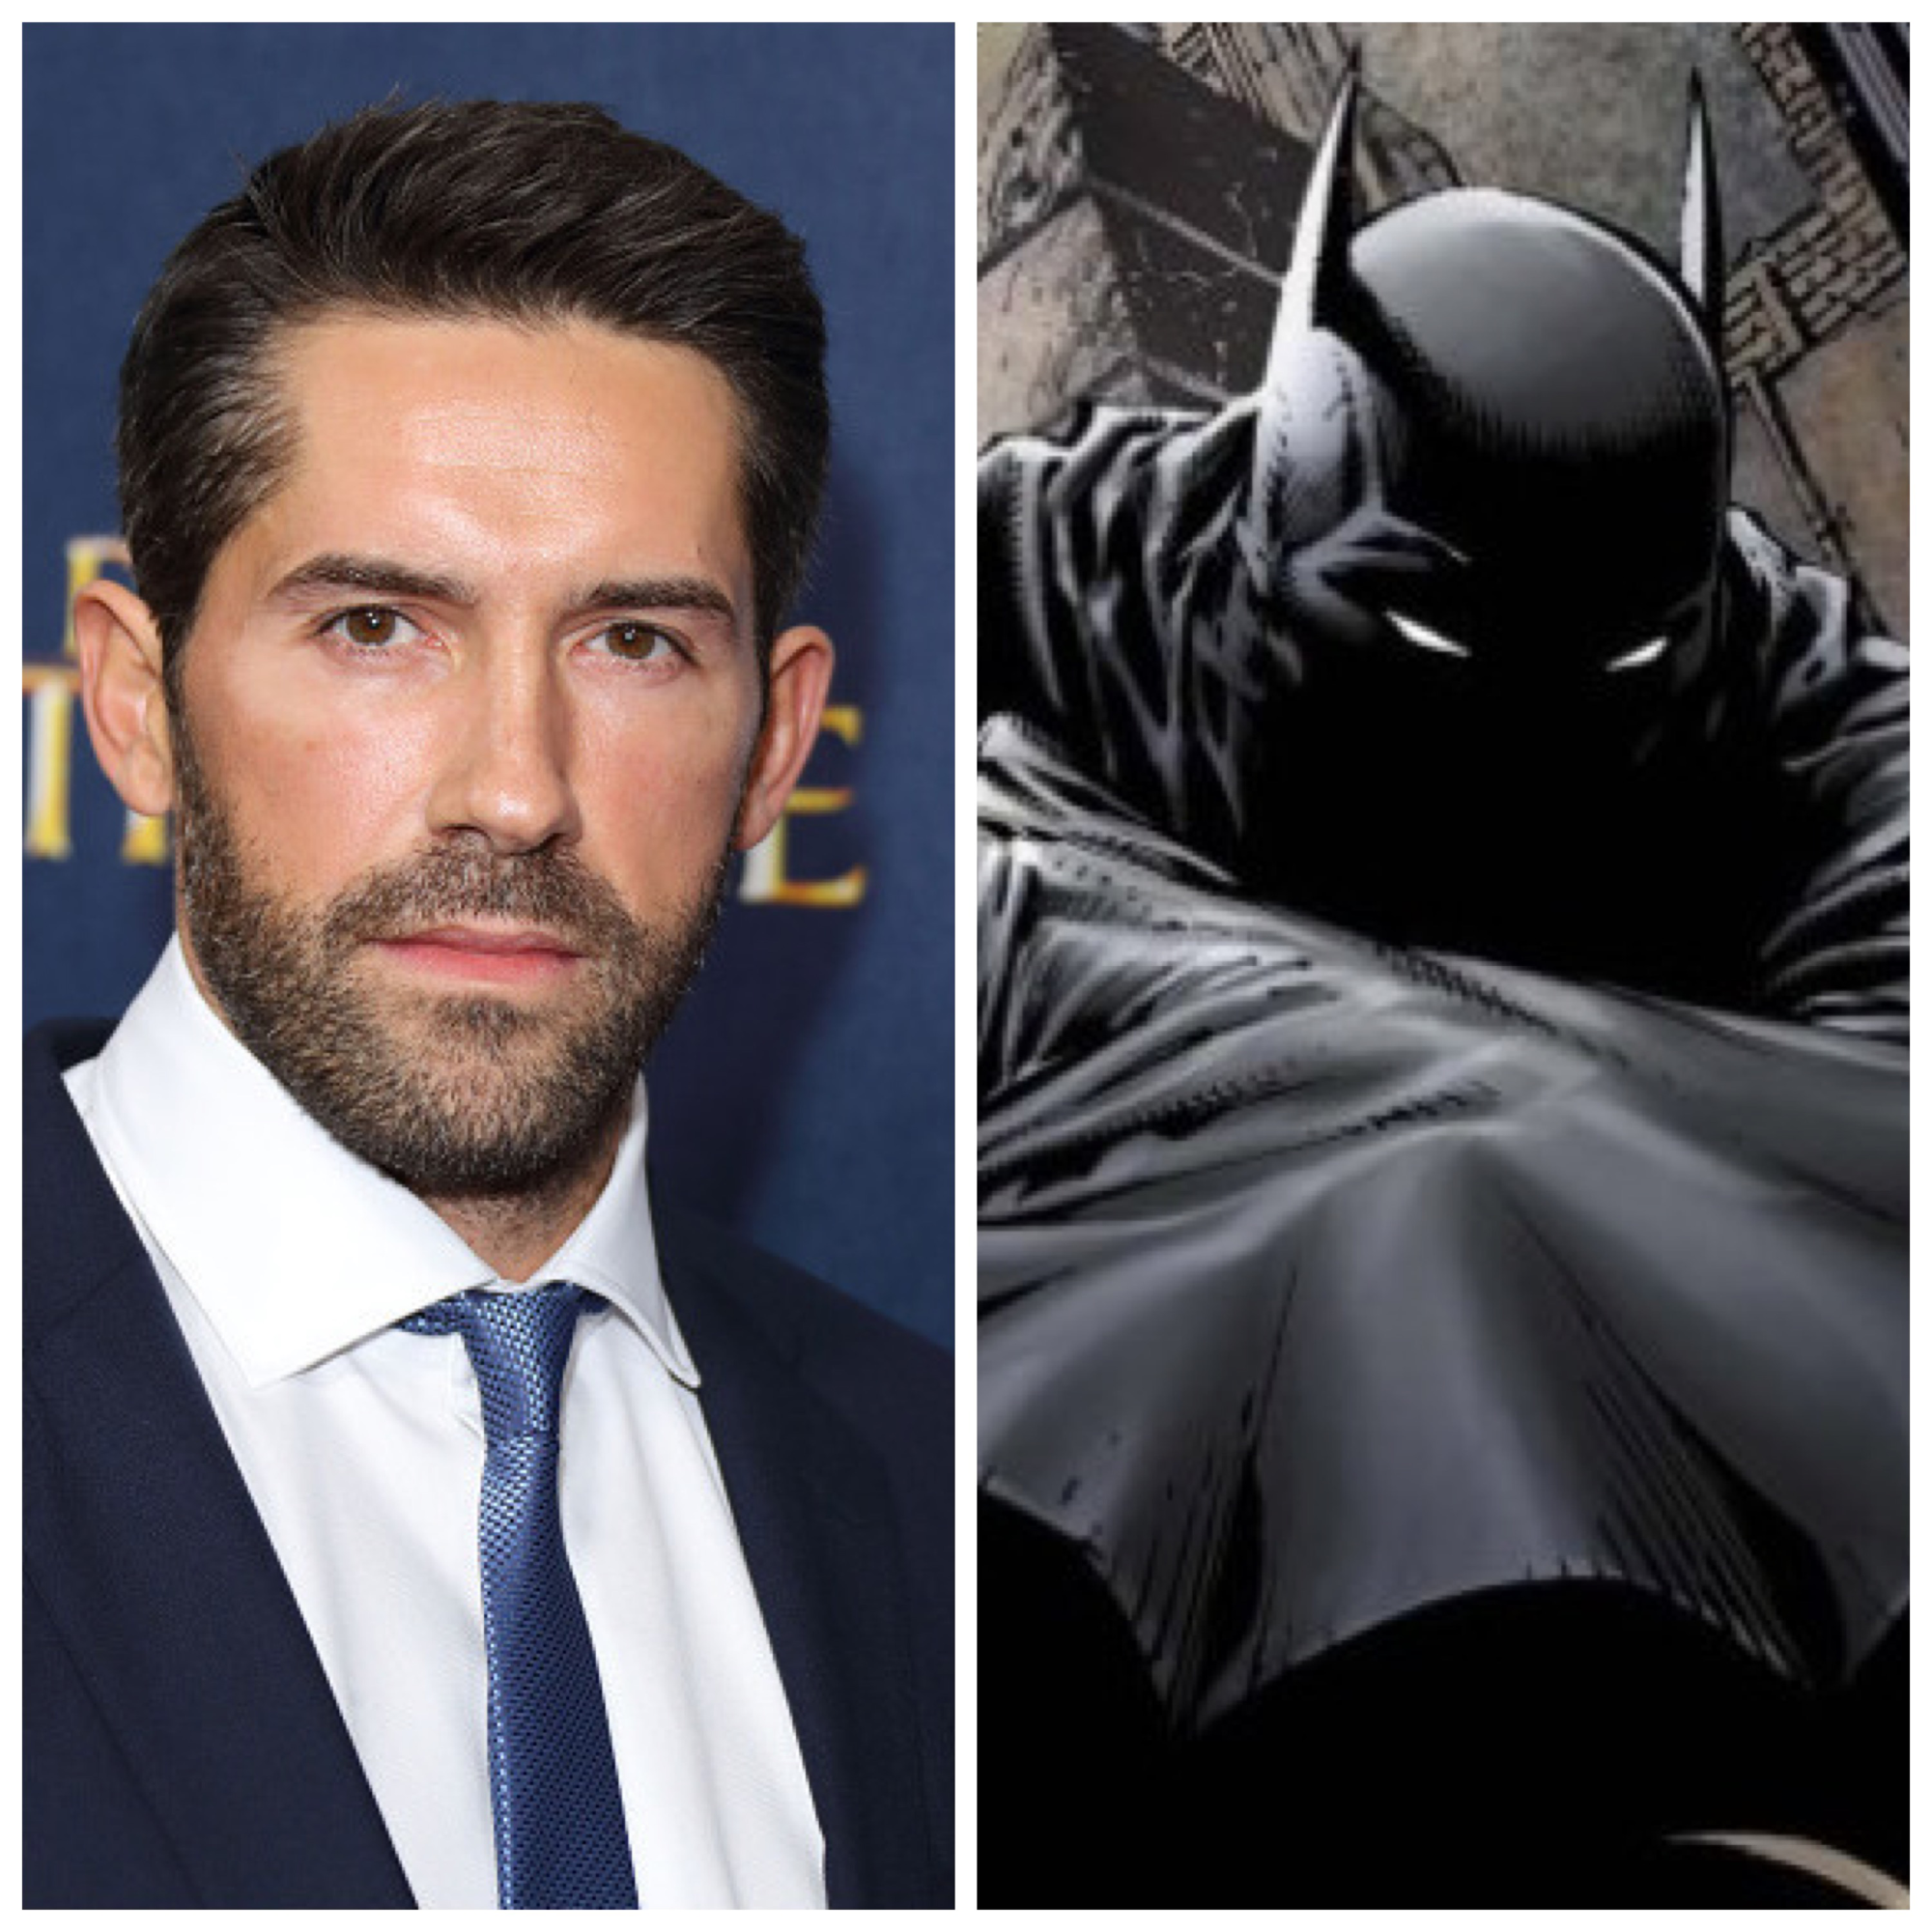 Robert Patterson is ok, but Scott Adkins would've been a better choice to dawn the cowl